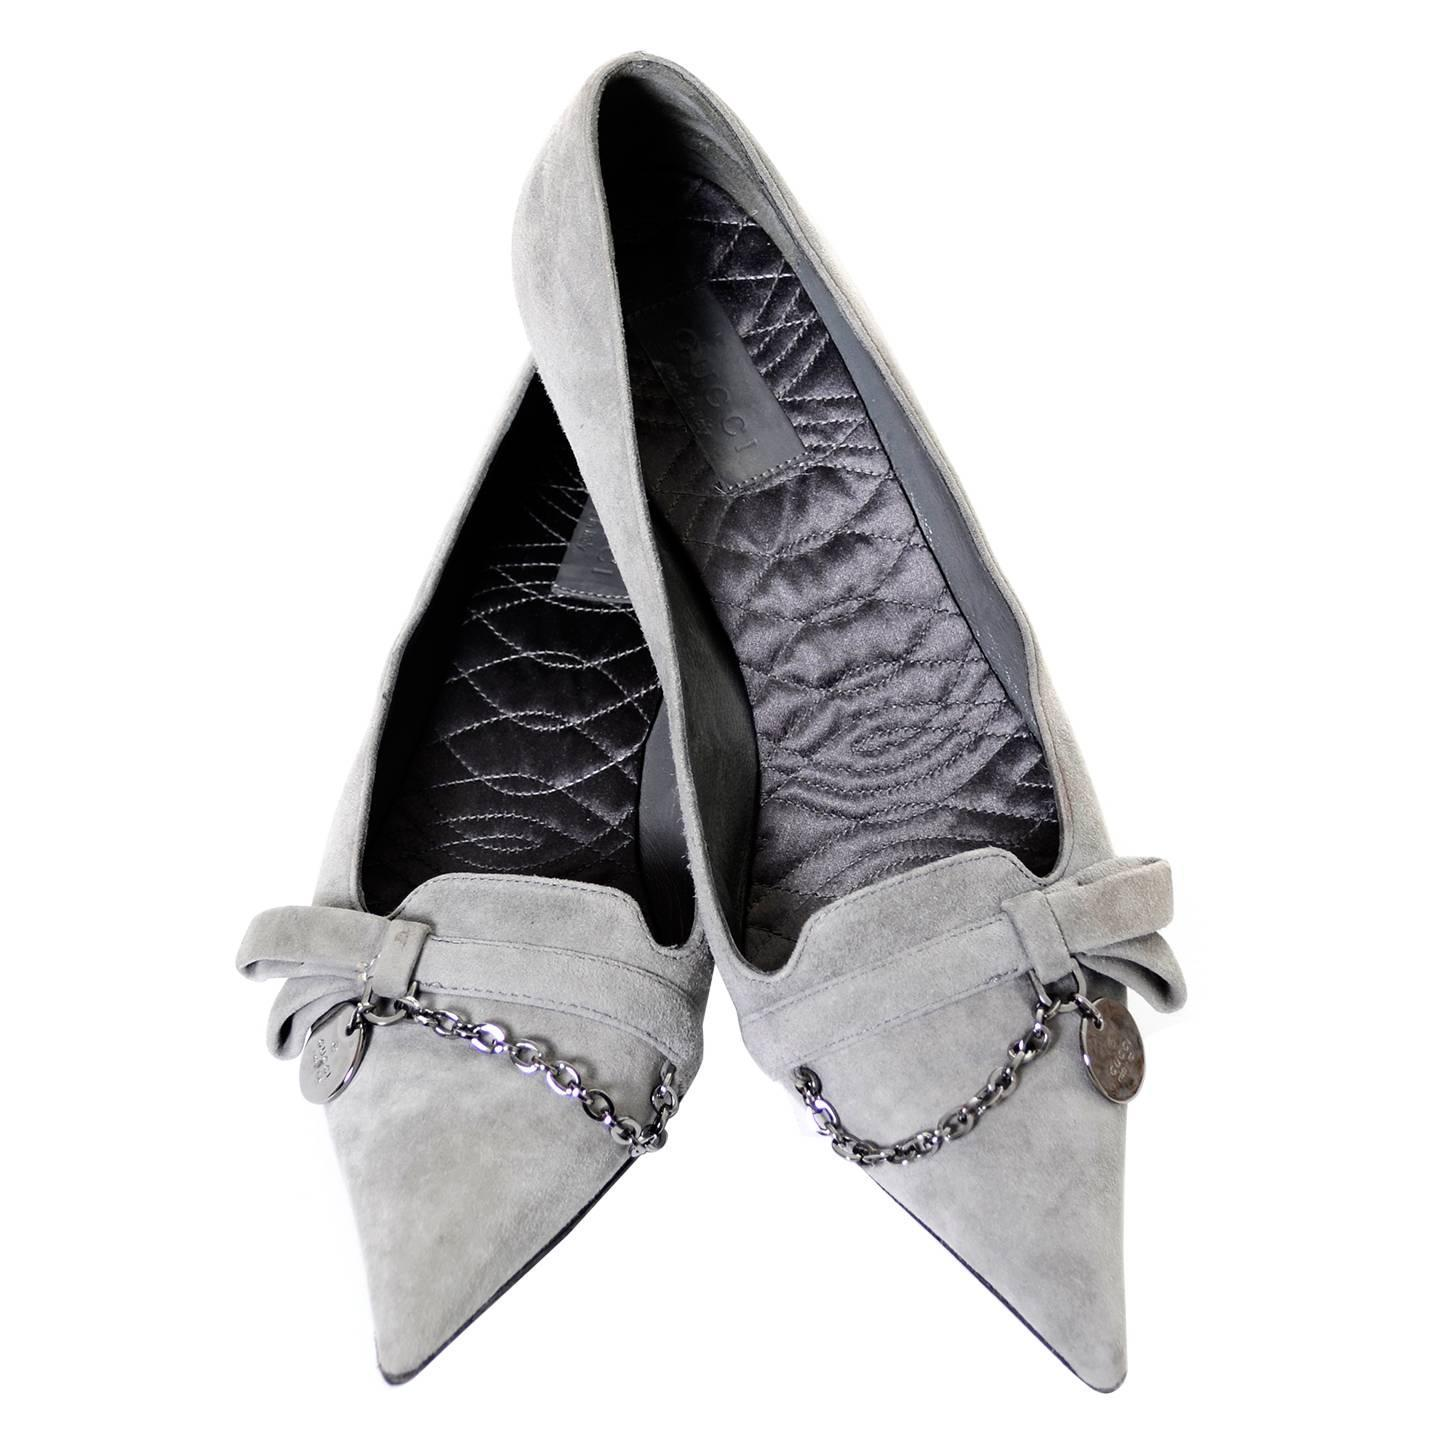 NEW Vintage Gucci Gray Suede Shoes Chain Detail Kitten Heels ...